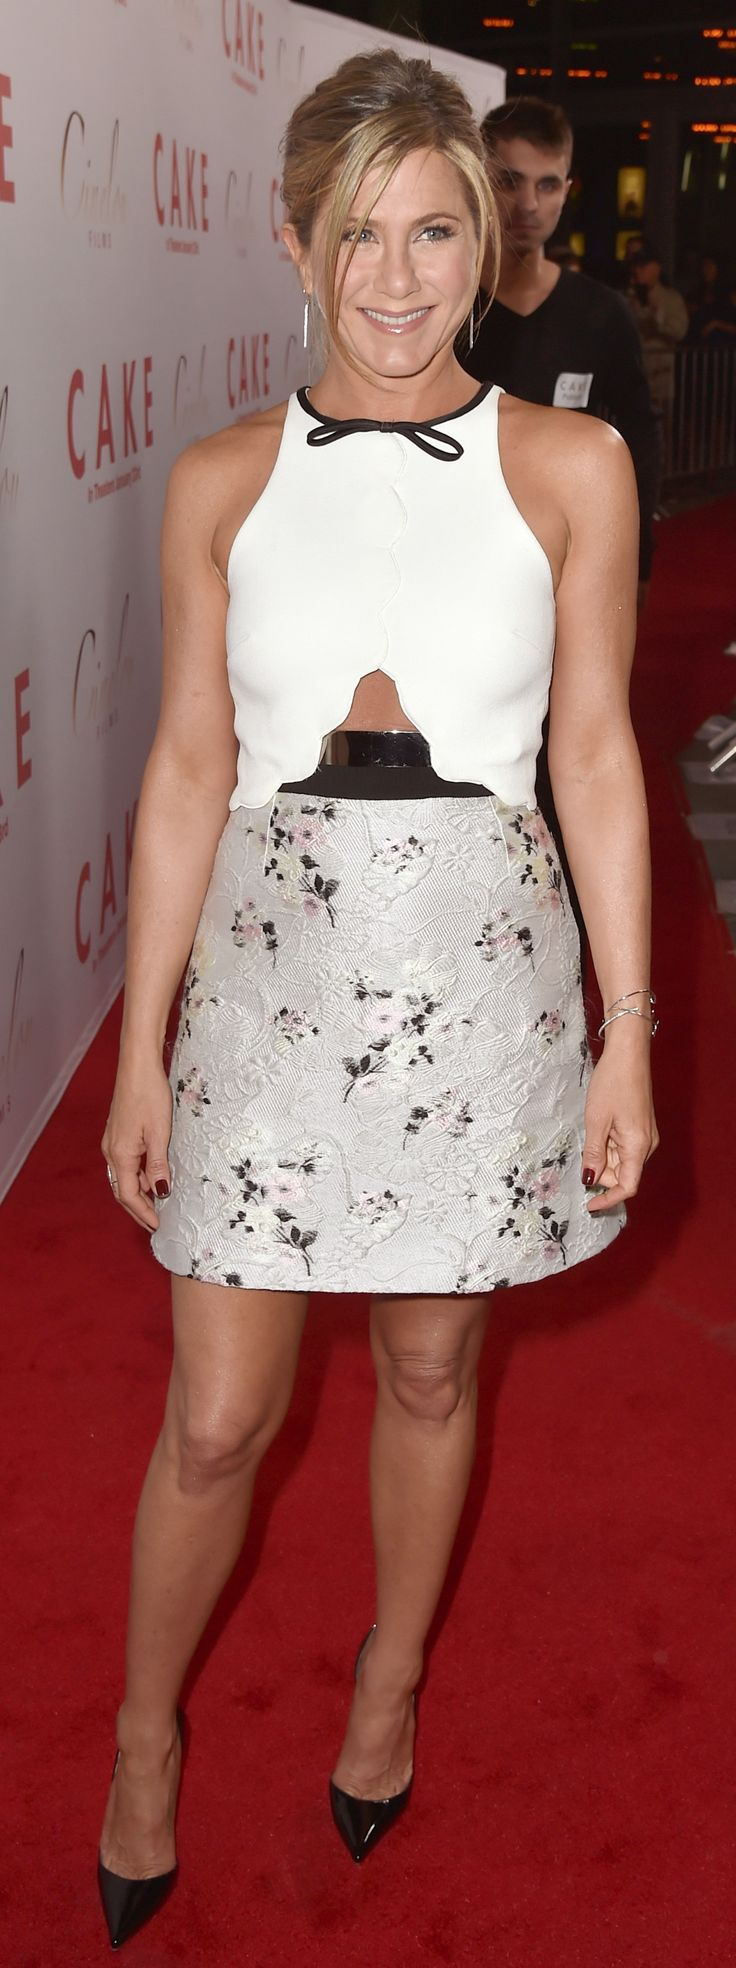 Jennifer Aniston Shows Some Skin at the Cake Premiere in Giambattista Valli